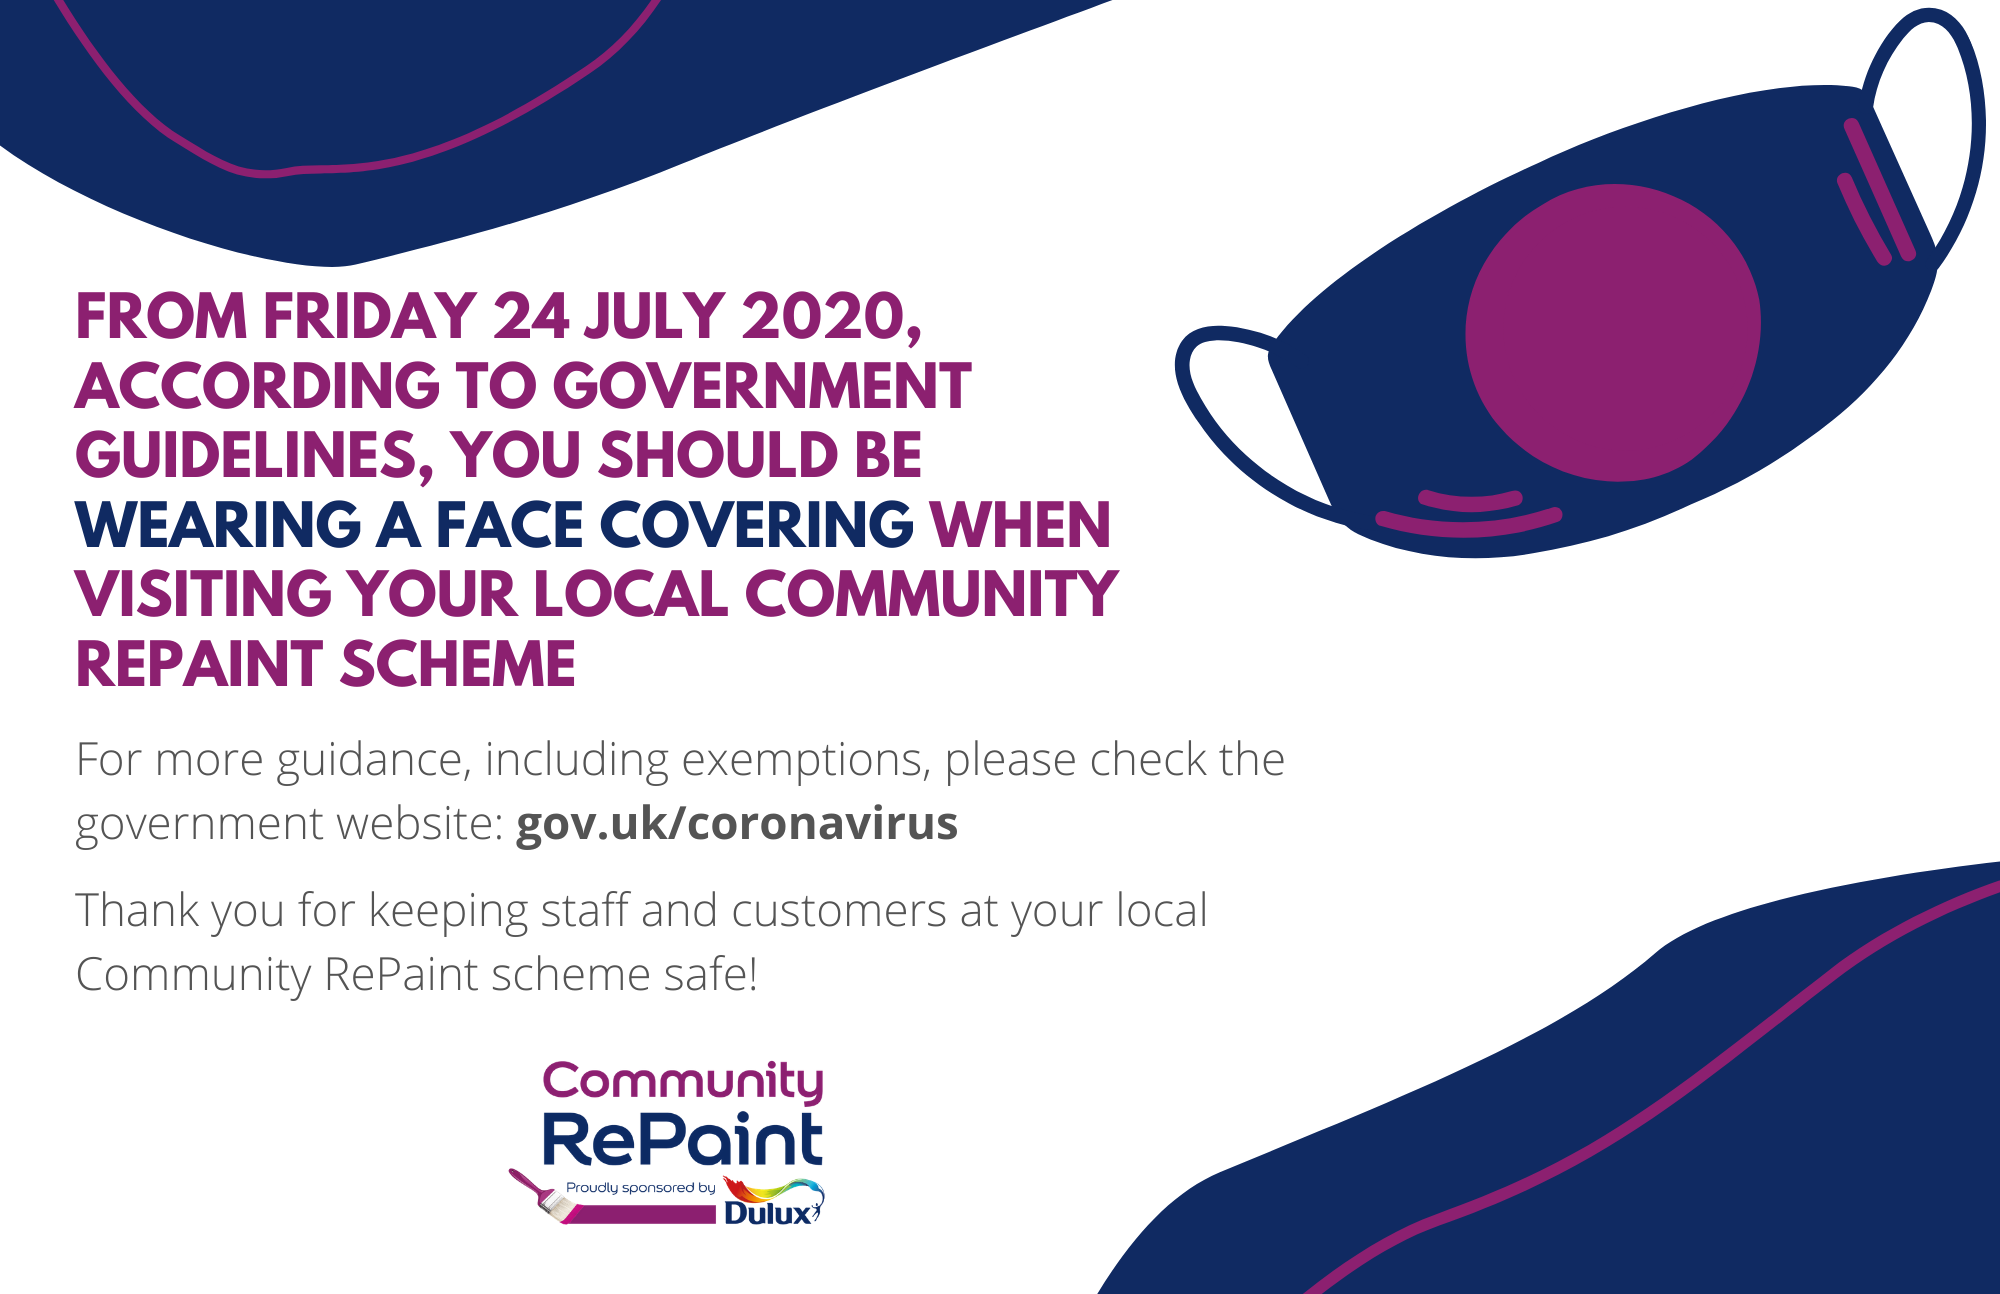 Announcement that reads: From Friday 24 July 2020, according to government guidelines, you should be wearing a face covering when visiting your local Community RePaint scheme. For more guidance, including exemptions, please check the government website: gov.uk/coronavirus. thank you for keeping staff and customers at your local Community RePaint scheme safe!